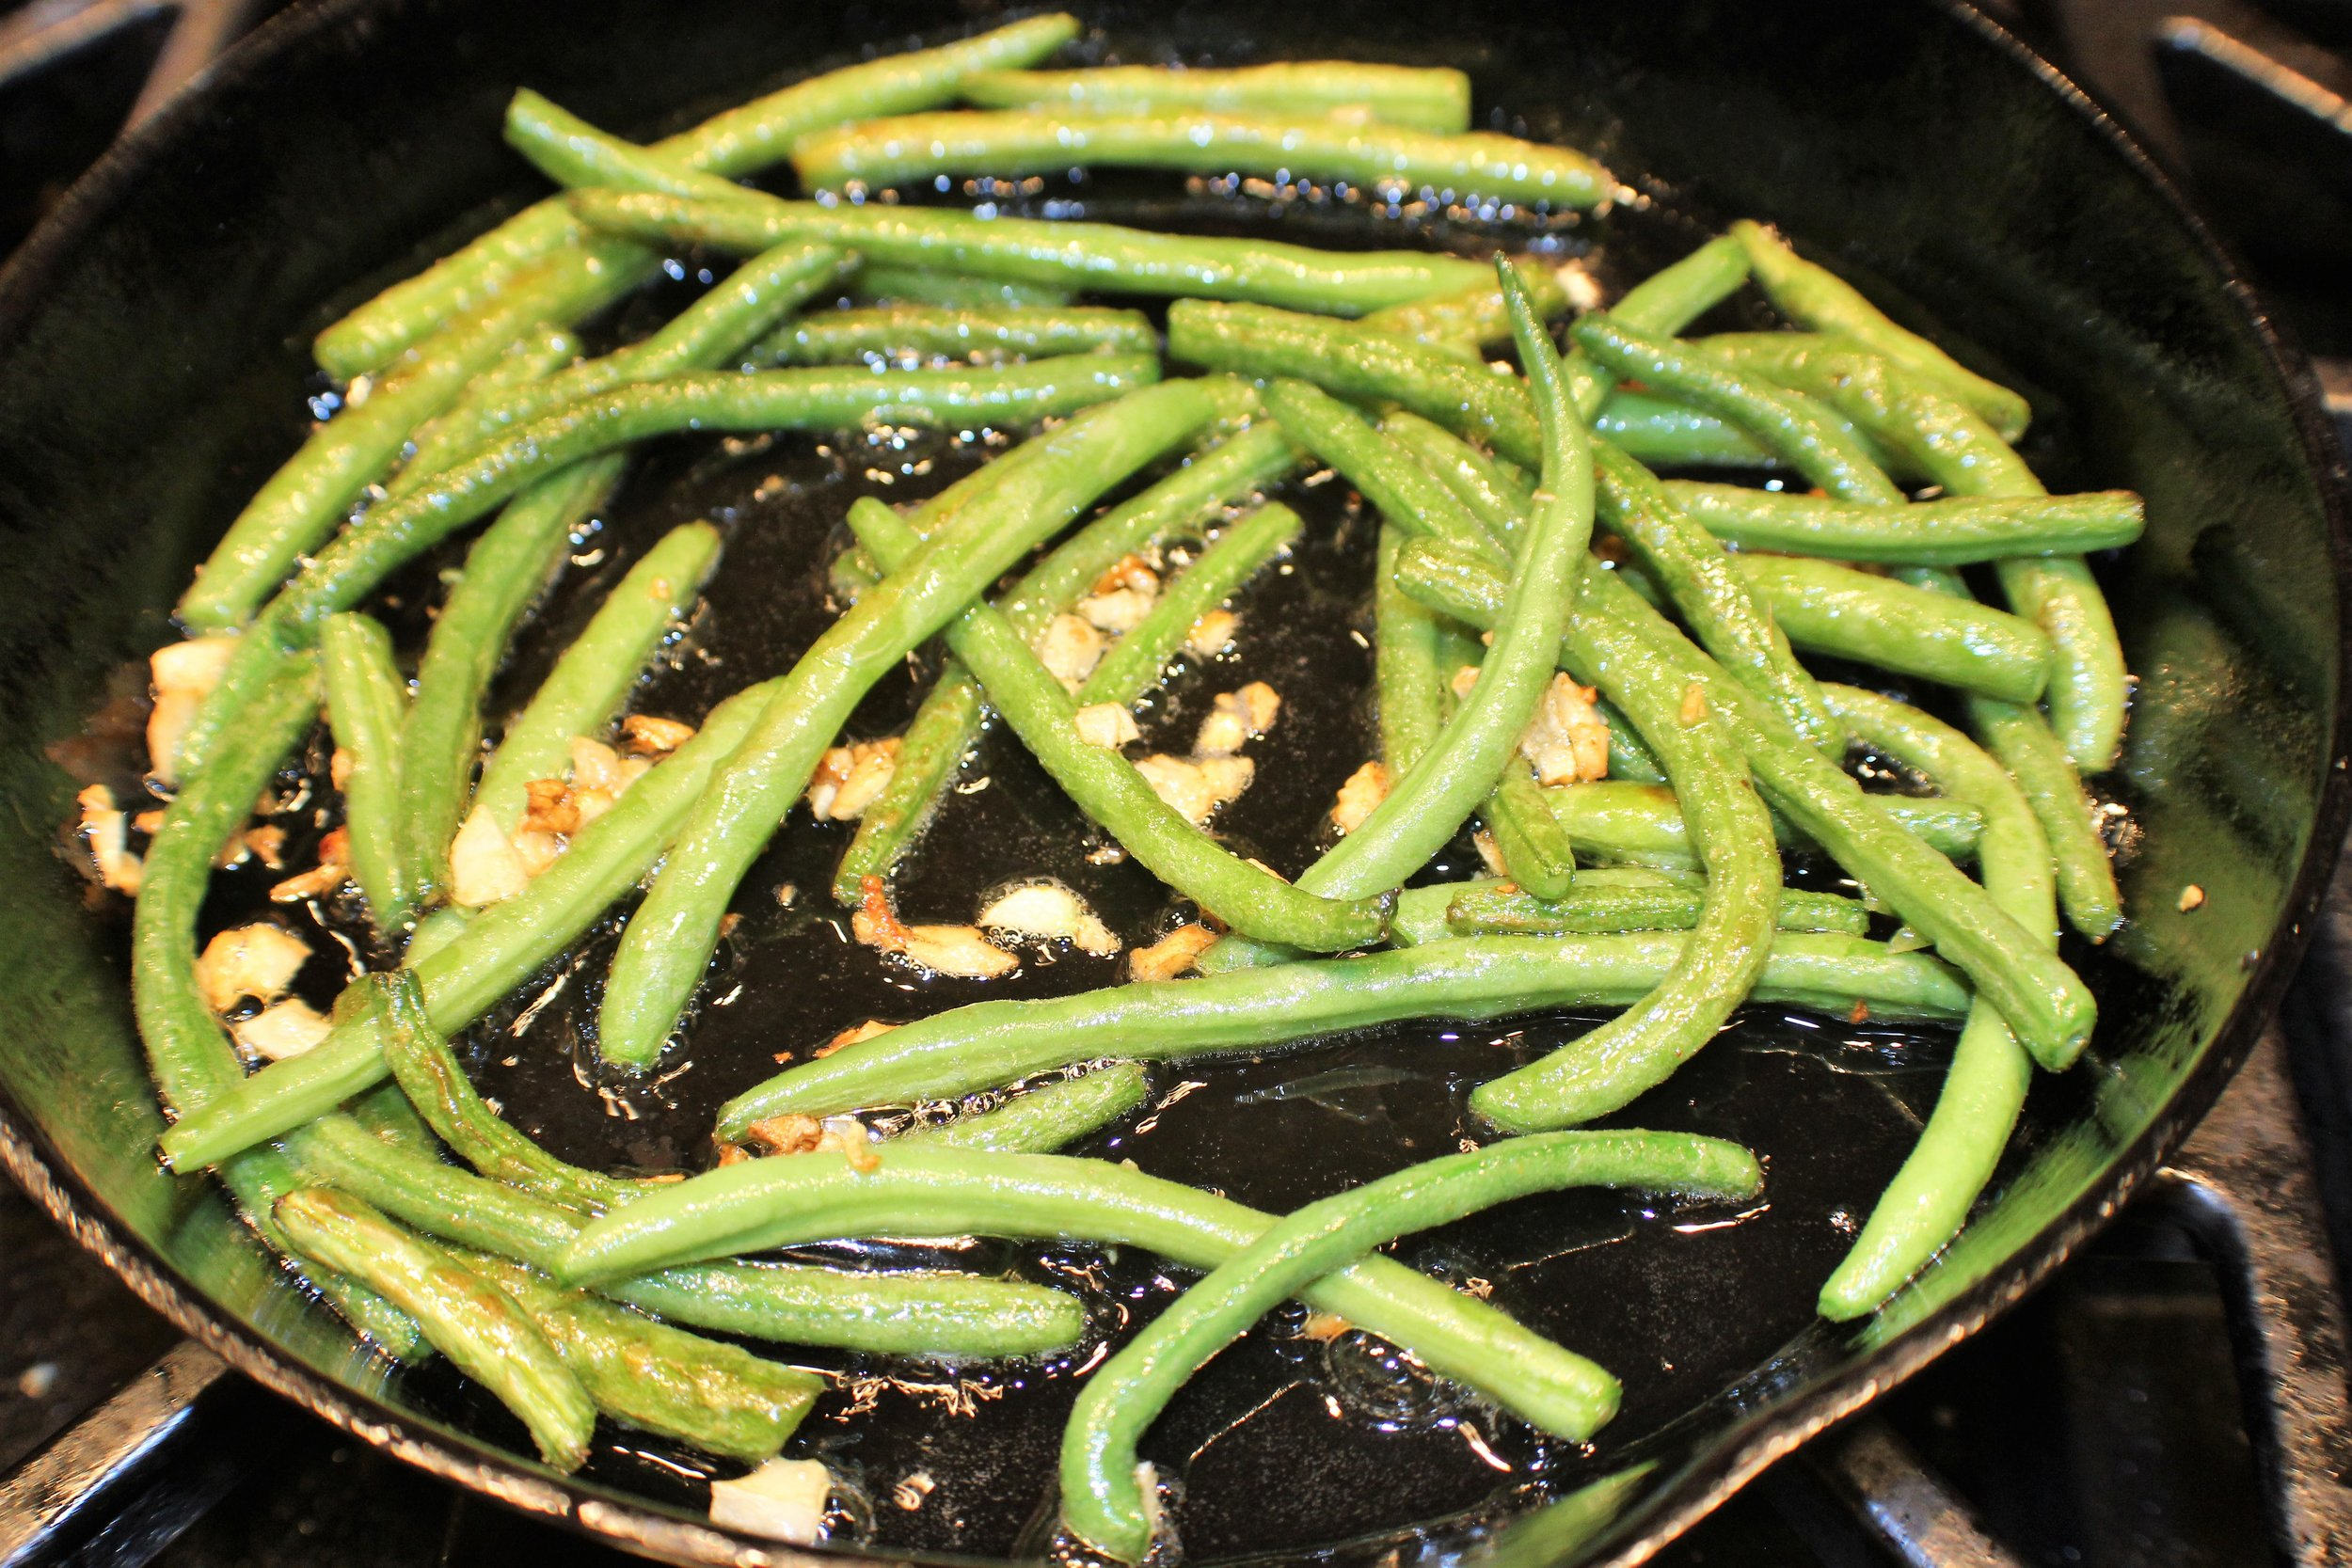 1 lb. green beans, trimmed  1 clove garlic  olive oil  salt  Add the beans to boiling, salted water and allow to cook for four or five minutes. Drain and cool by running under cold water in a colander.  Smash the garlic clove and mince roughly. Heat a cast iron skillet and film it with olive oil. Add the green beans and cook on medium-high heat for about 5 minutes. Add garlic and continue to cook, turning and stirring until the beans begin to char. Turn off the heat and salt the beans to taste. Enjoy warm or at room temperature.  ©Kate Jerome 2019